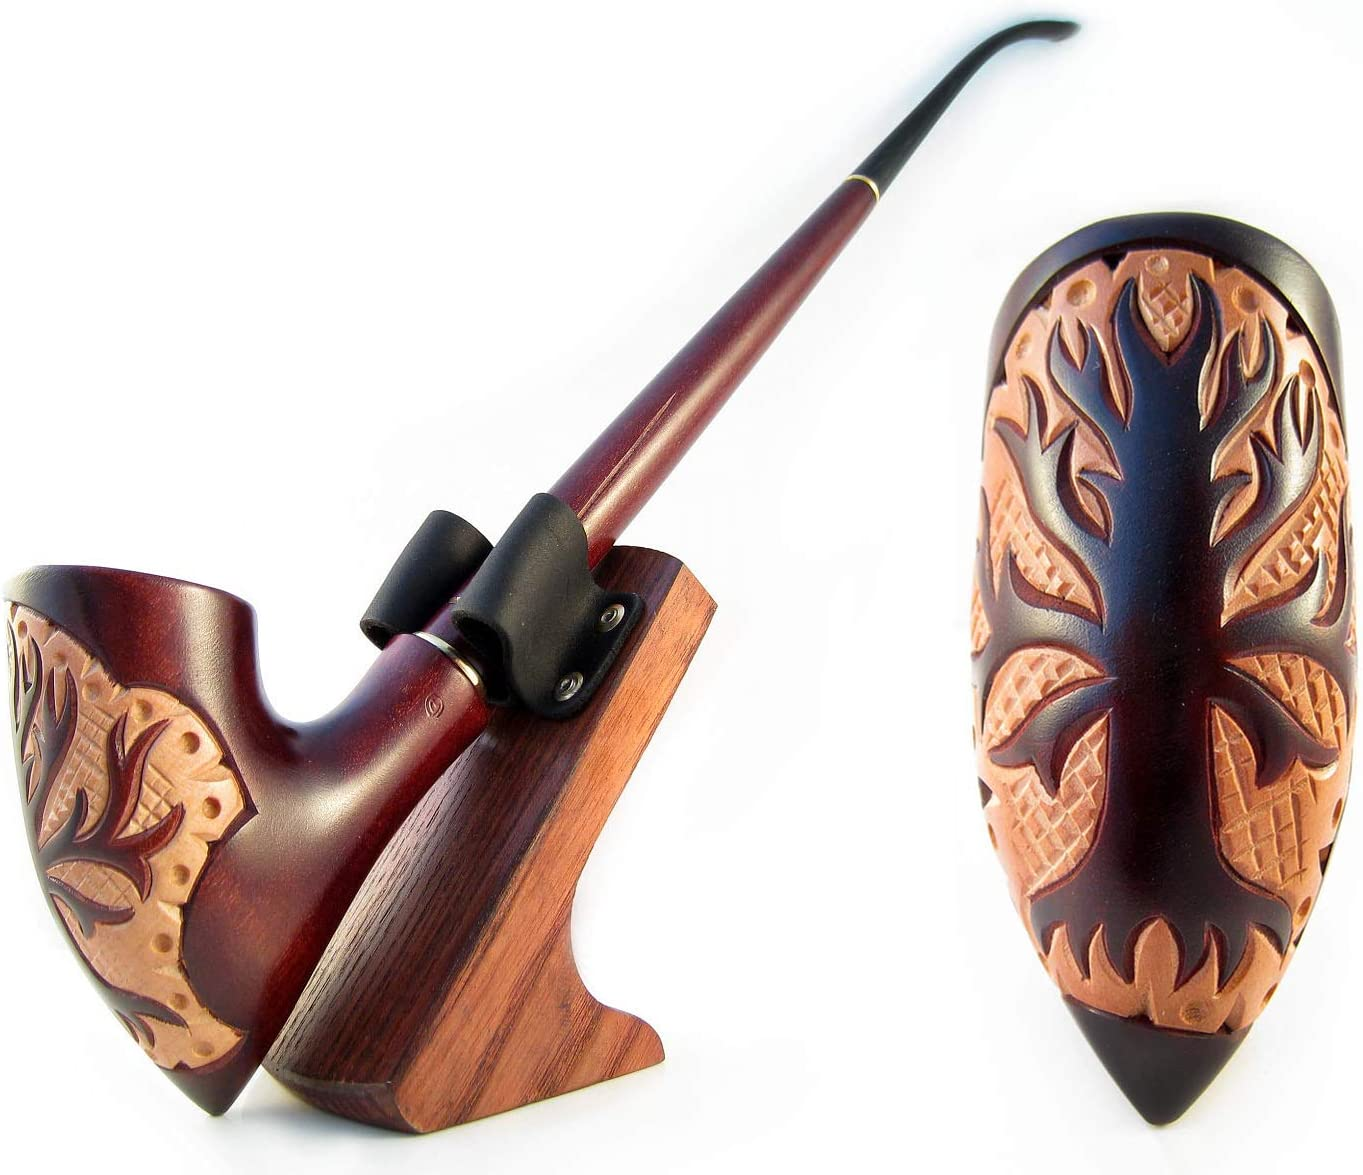 Churchwarden LONG PIPE Smoking pipe Wooden Pipe Tobacco pipe Birthday Personalized Gift Groomsmen Gift Wedding Gift for Him Custom Engraving